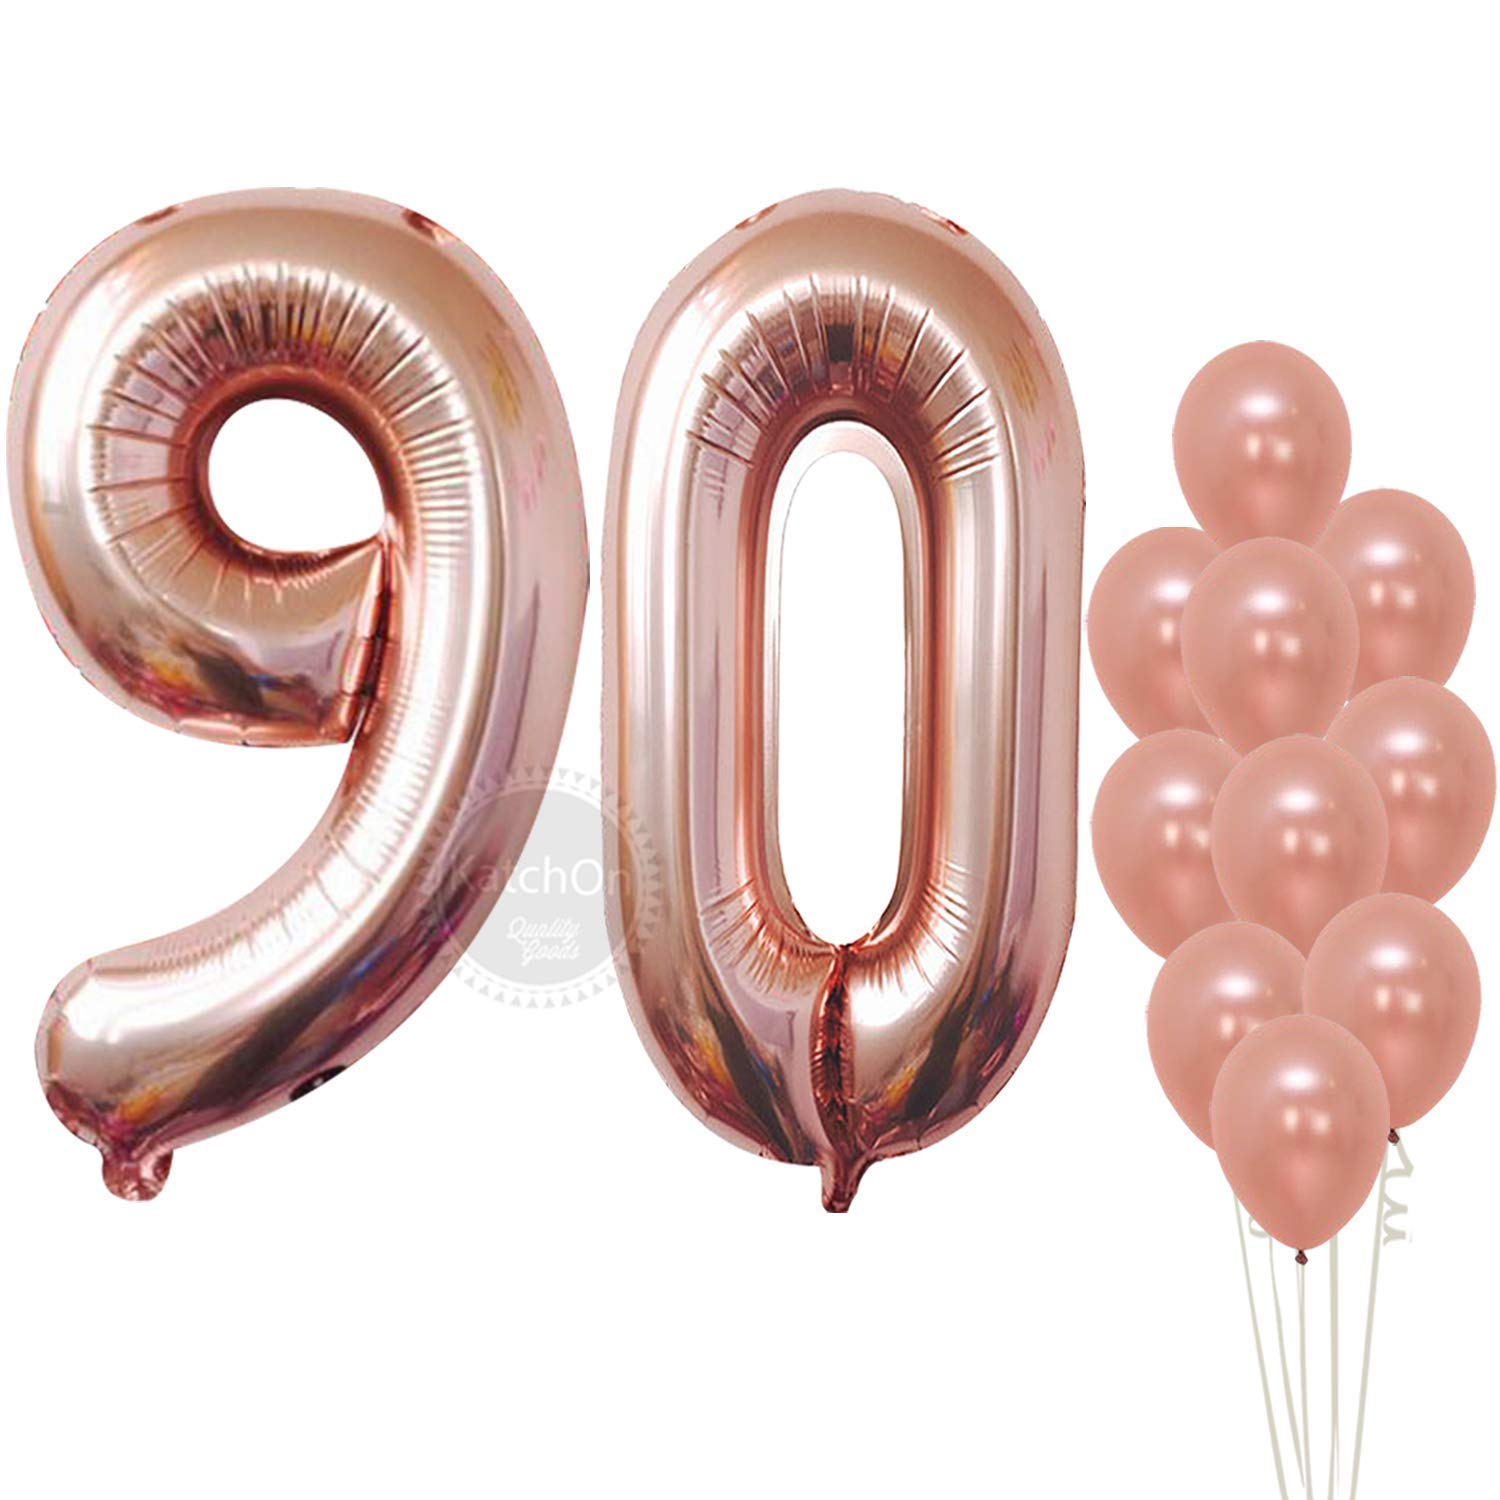 Rose Gold 80 Number Balloons - Large, 8 and 0 Mylar Rose Gold Balloons, 40 Inch | Extra Pack of 10 Latex Baloons, 12 Inch | Great 80th Birthday Party Decorations| 80 Year Old Rose Gold Party Supplies KatchOn